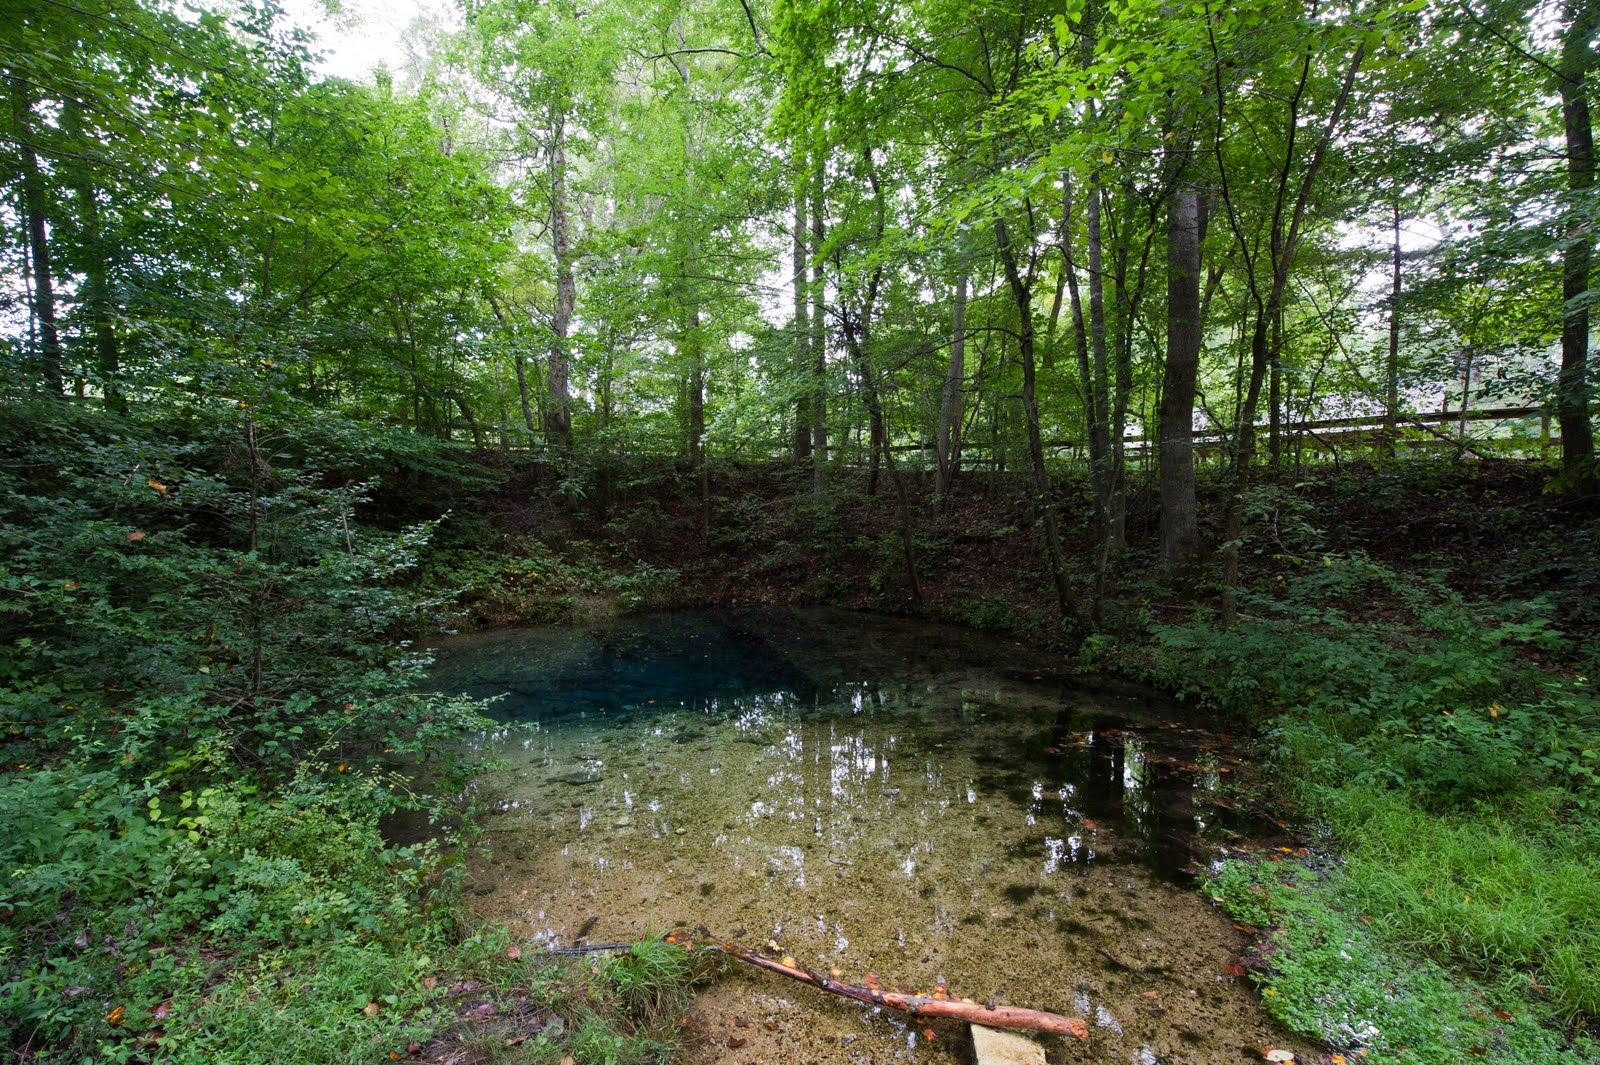 Tonys blog blue hole at red clay state park red clay state historic park is located in the extreme southwest corner of bradley county in tennessee just above the tennessee georgia state line publicscrutiny Image collections